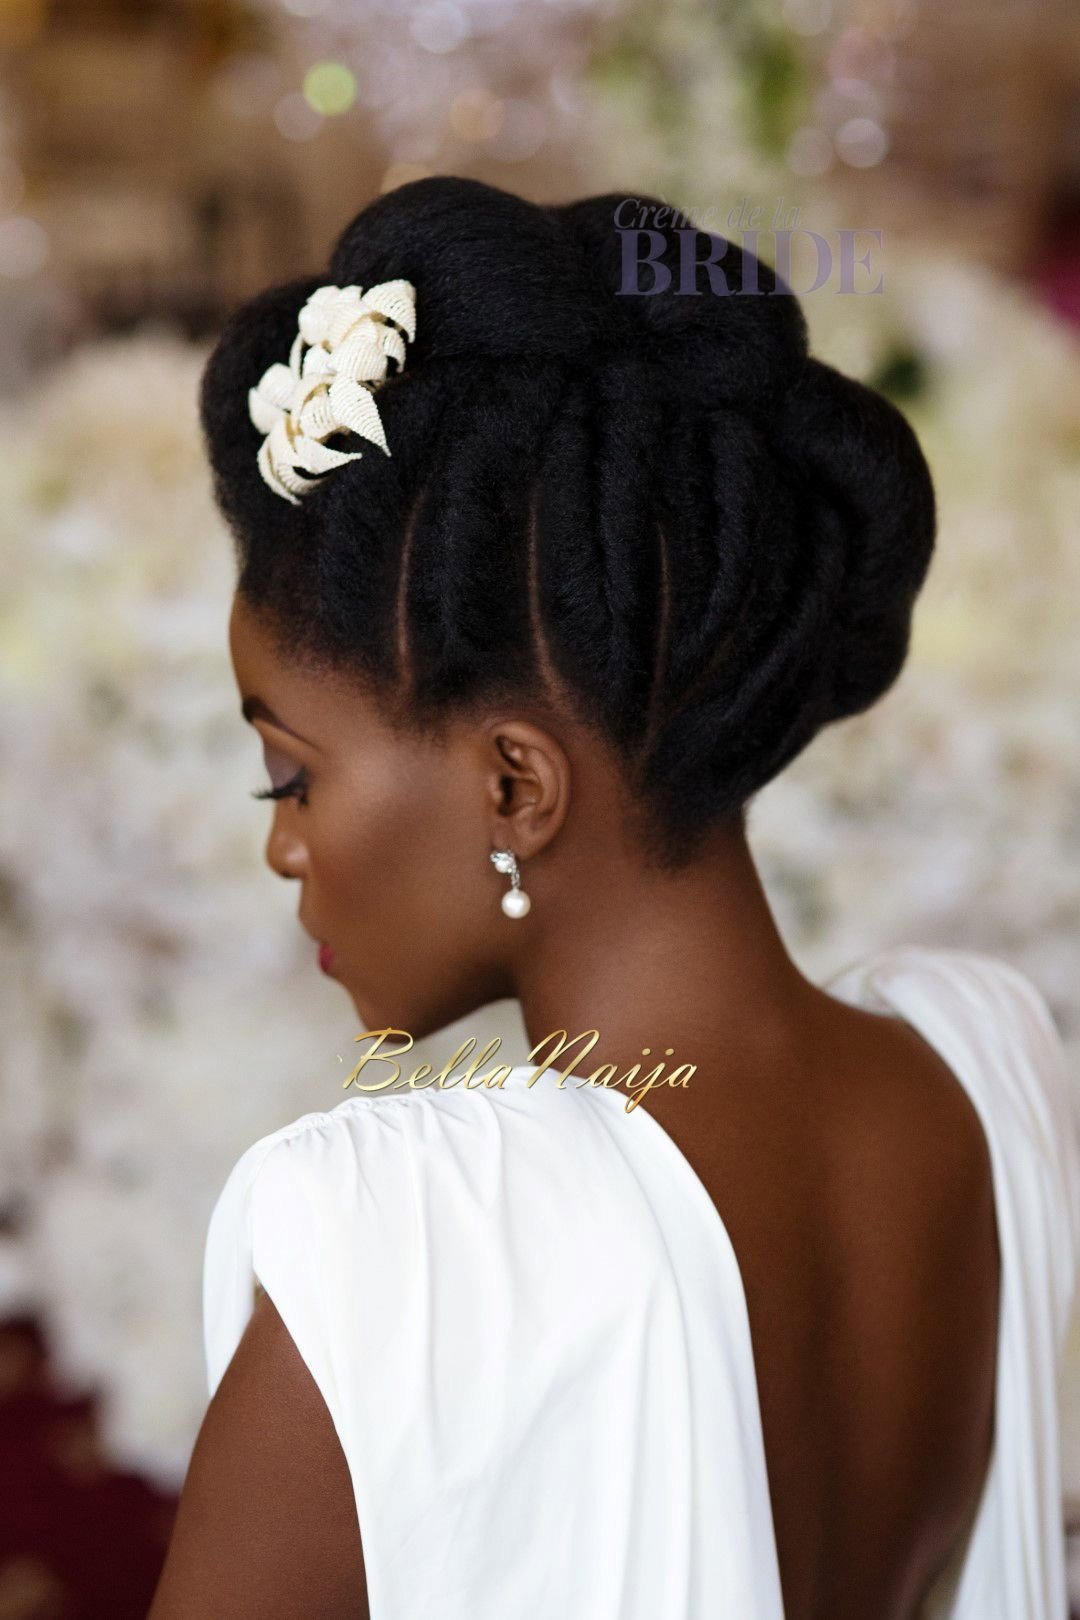 The Best Bn Bridal Beauty The Natural Beauté Dionne Smith Pictures